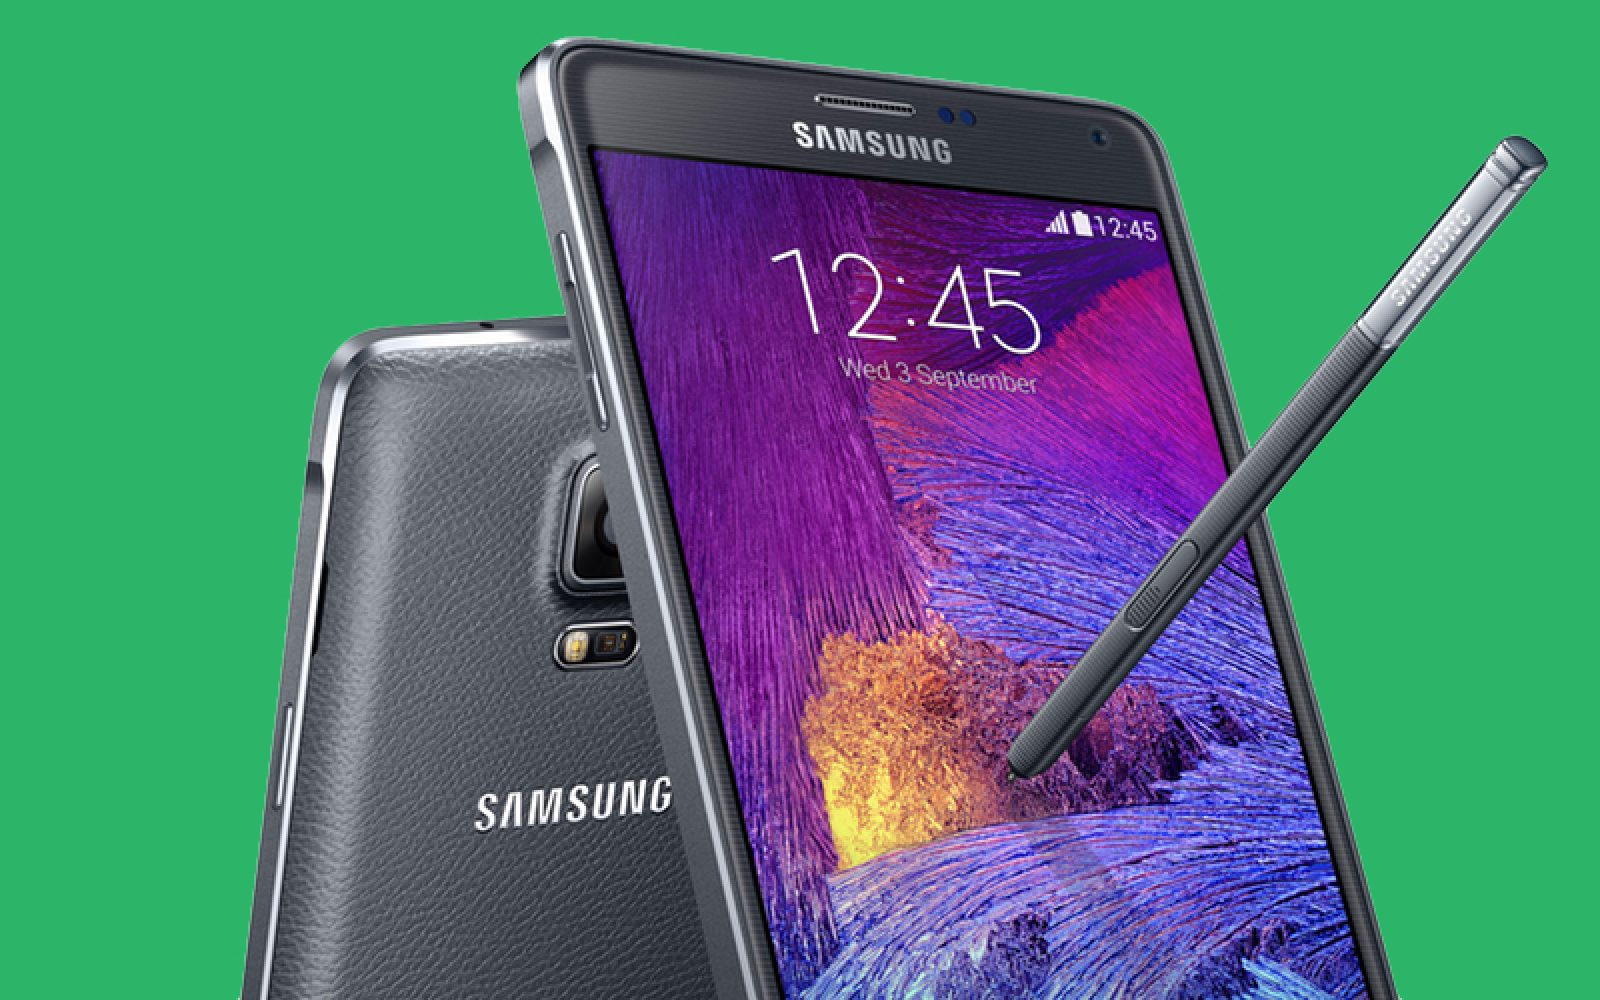 Android Marshmallow update for Samsung Galaxy Note 4 begins